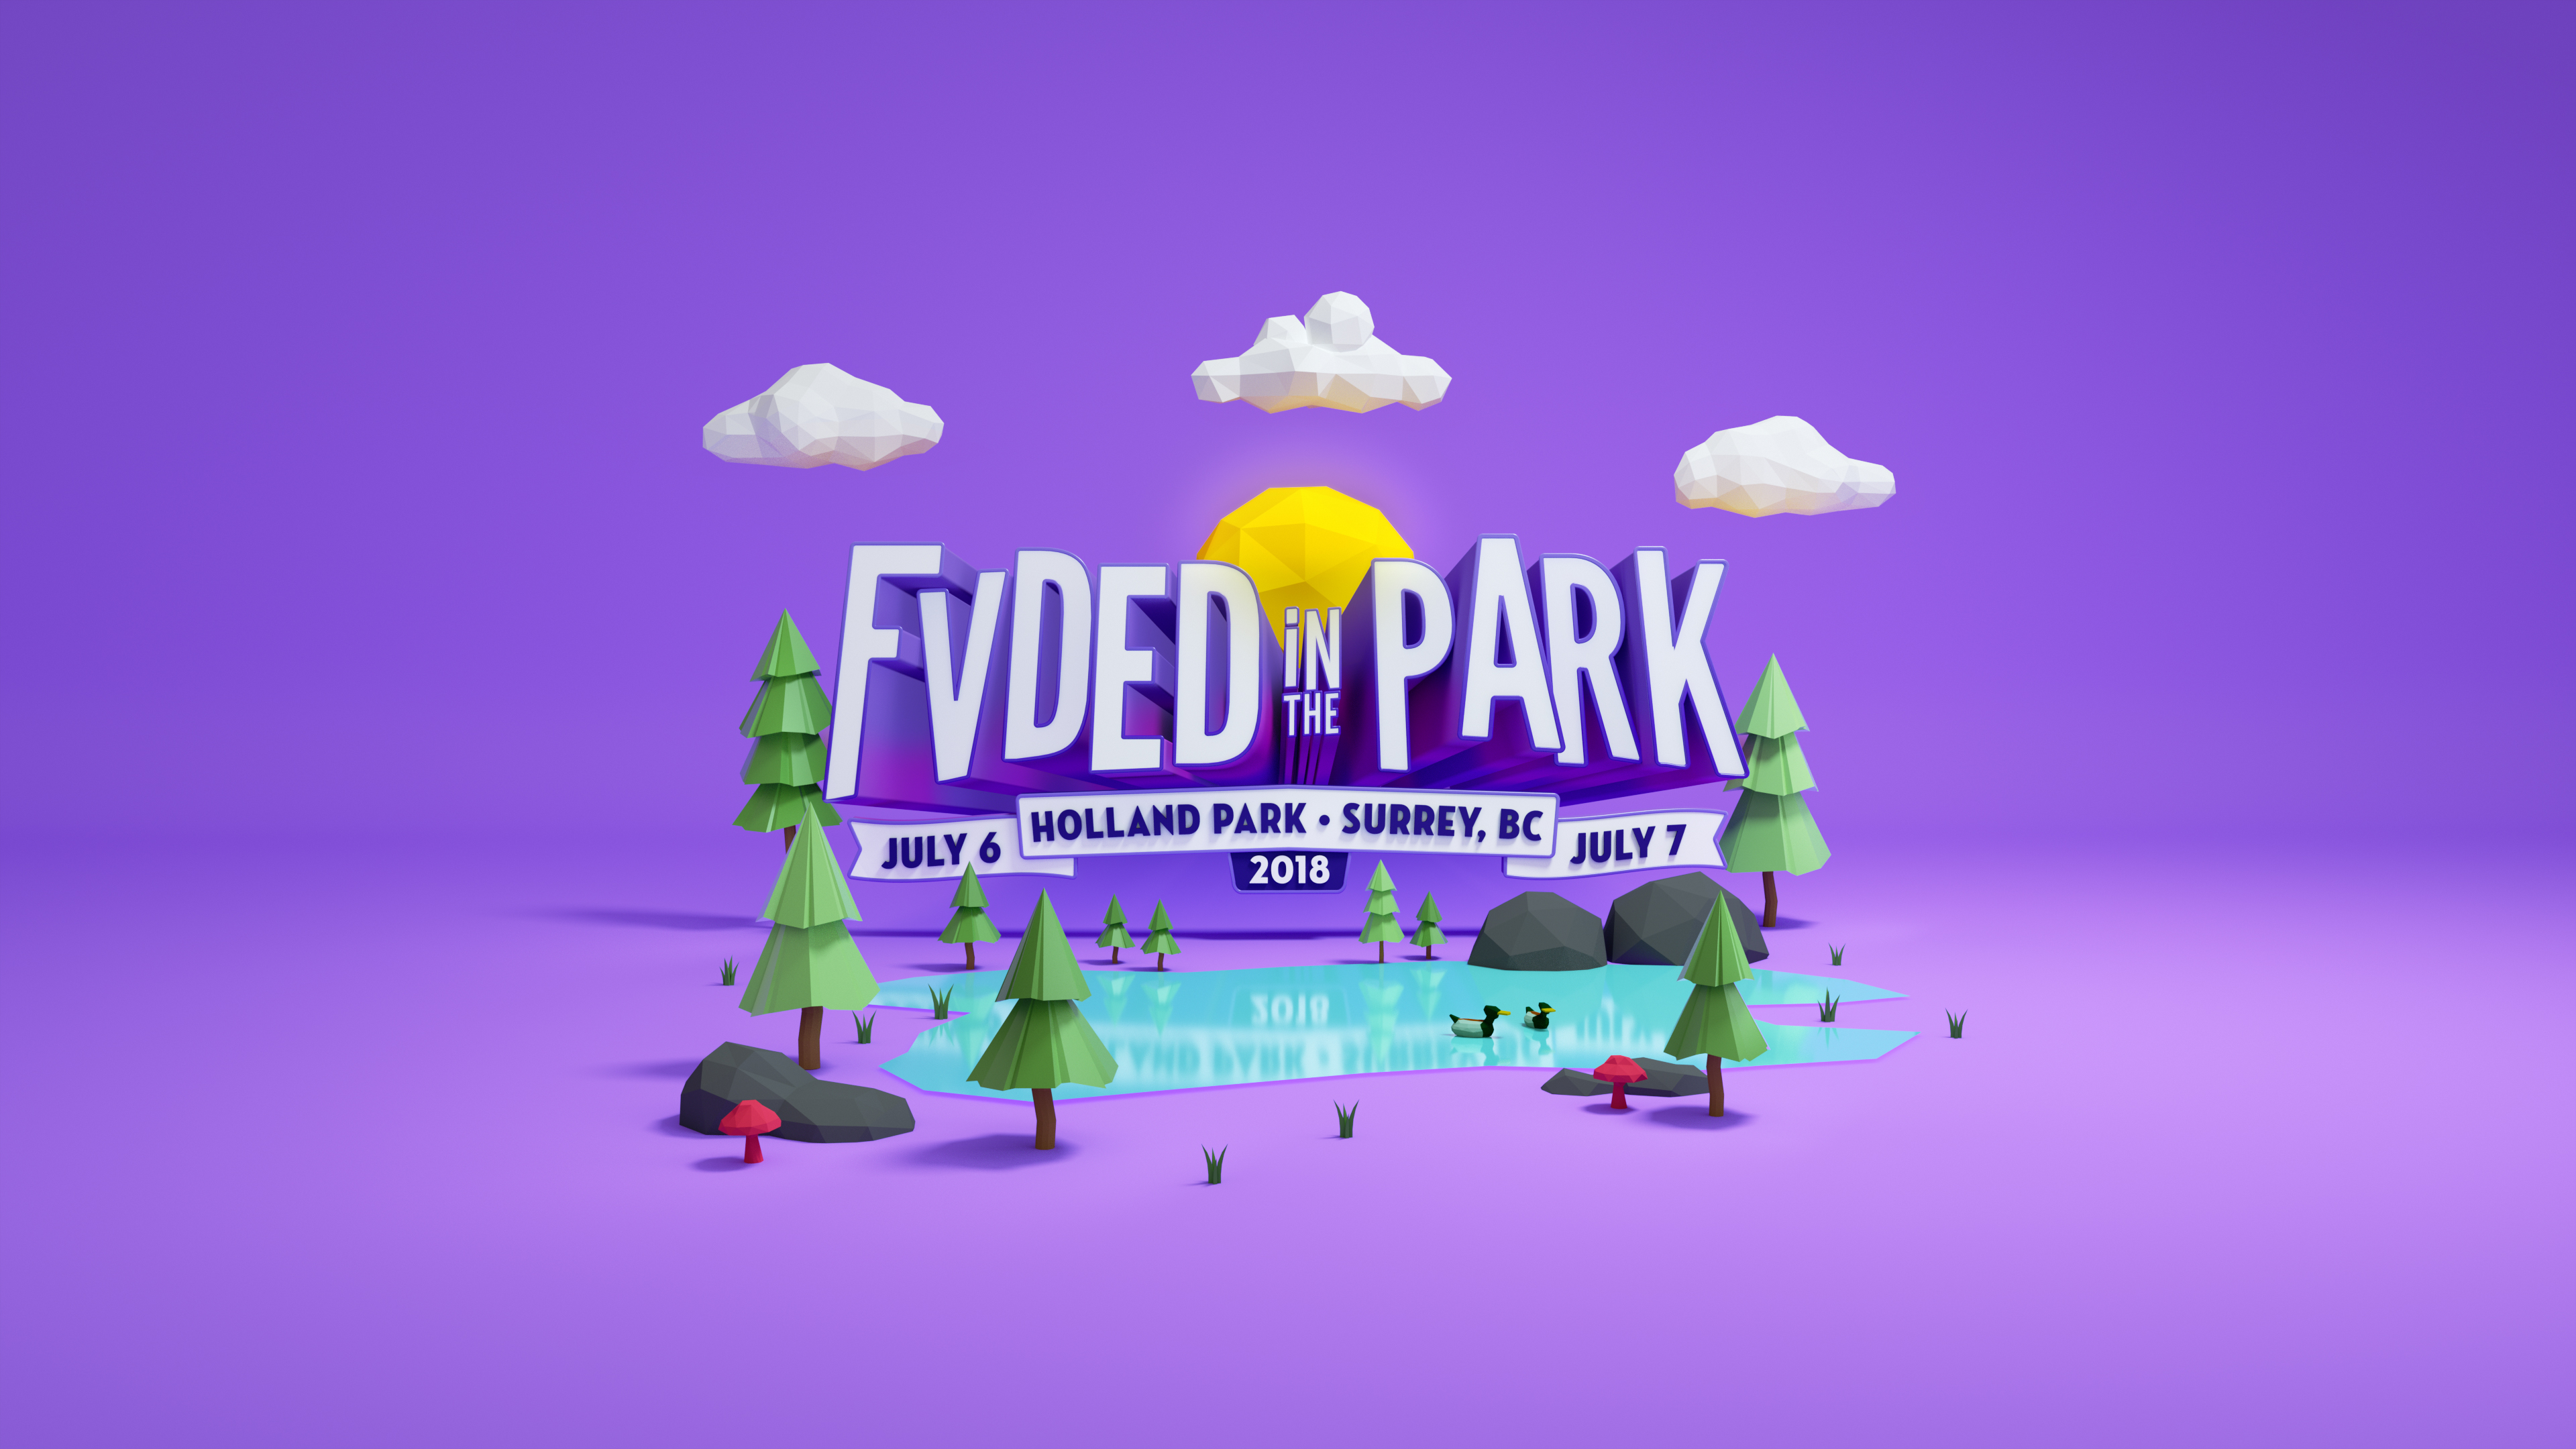 FVDED_Website_Main_purple_20171221